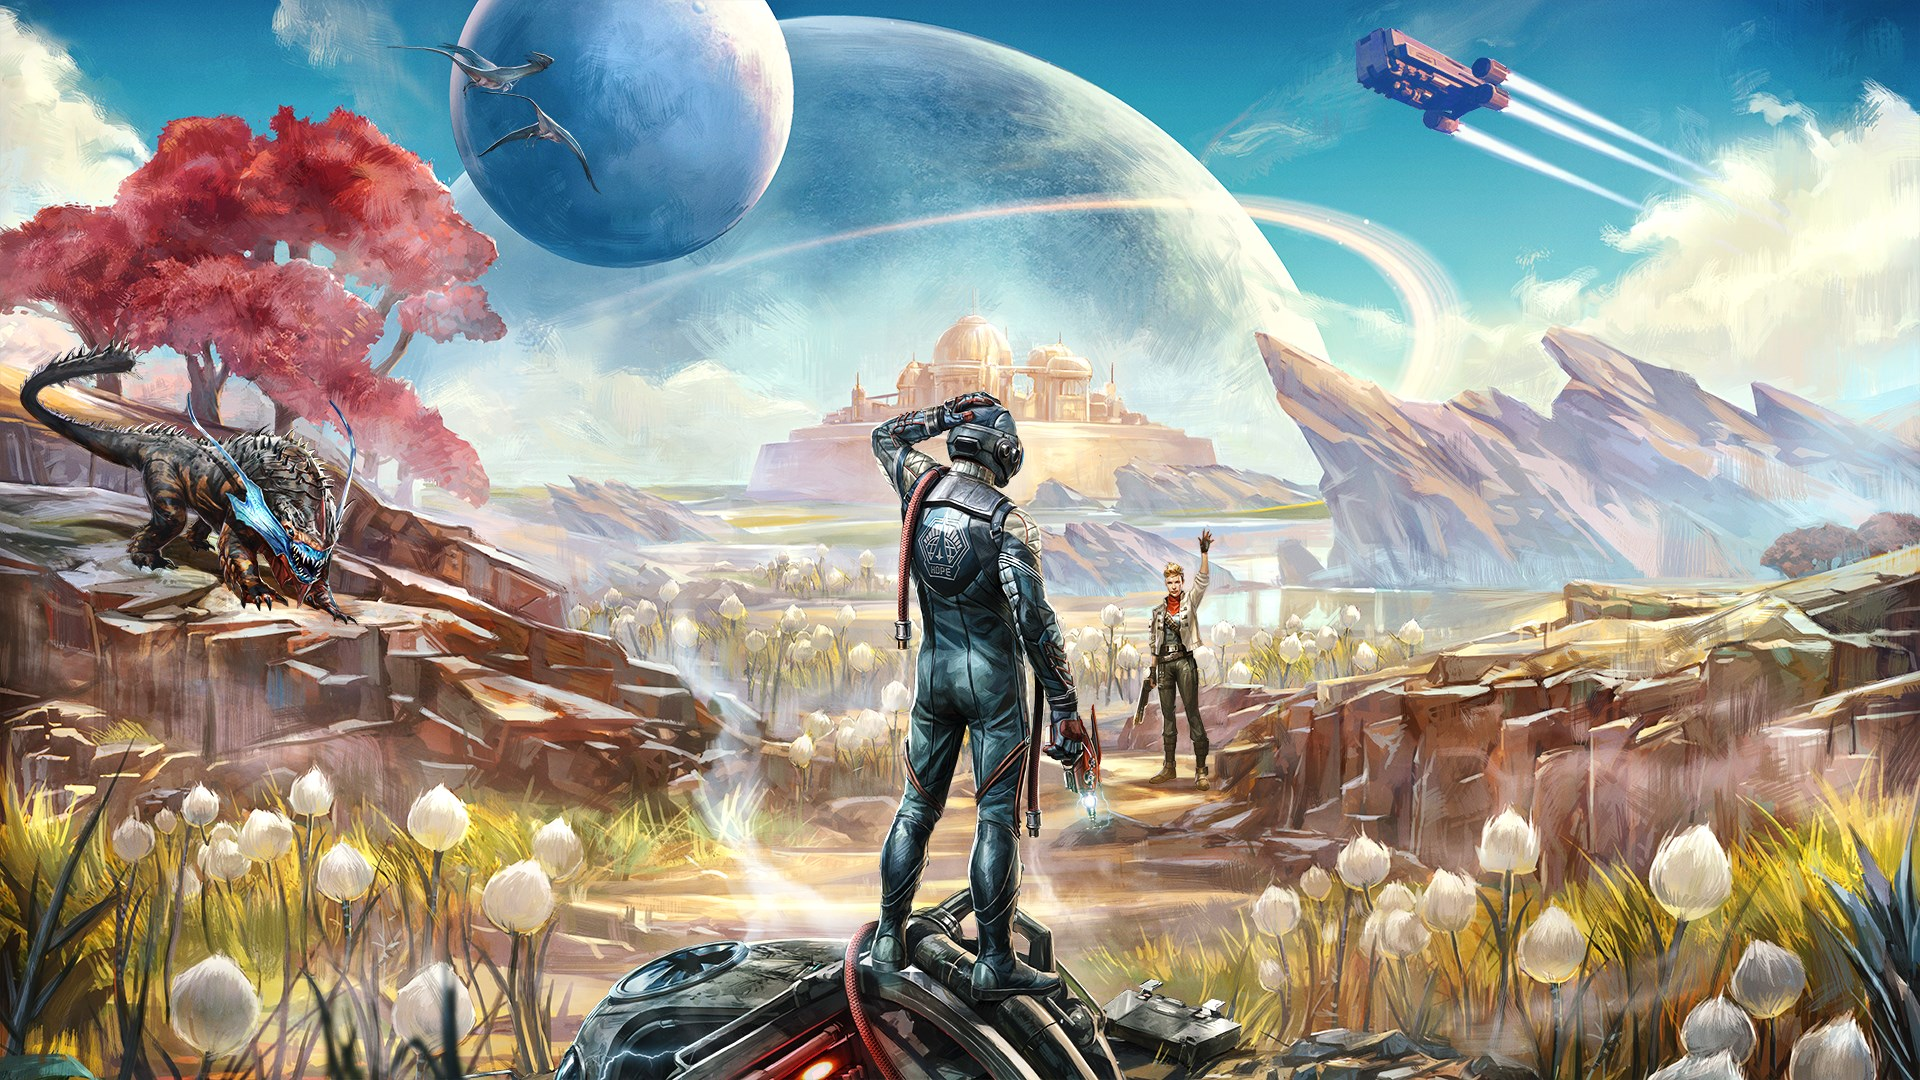 The Outer Worlds Releases on Steam on October 23